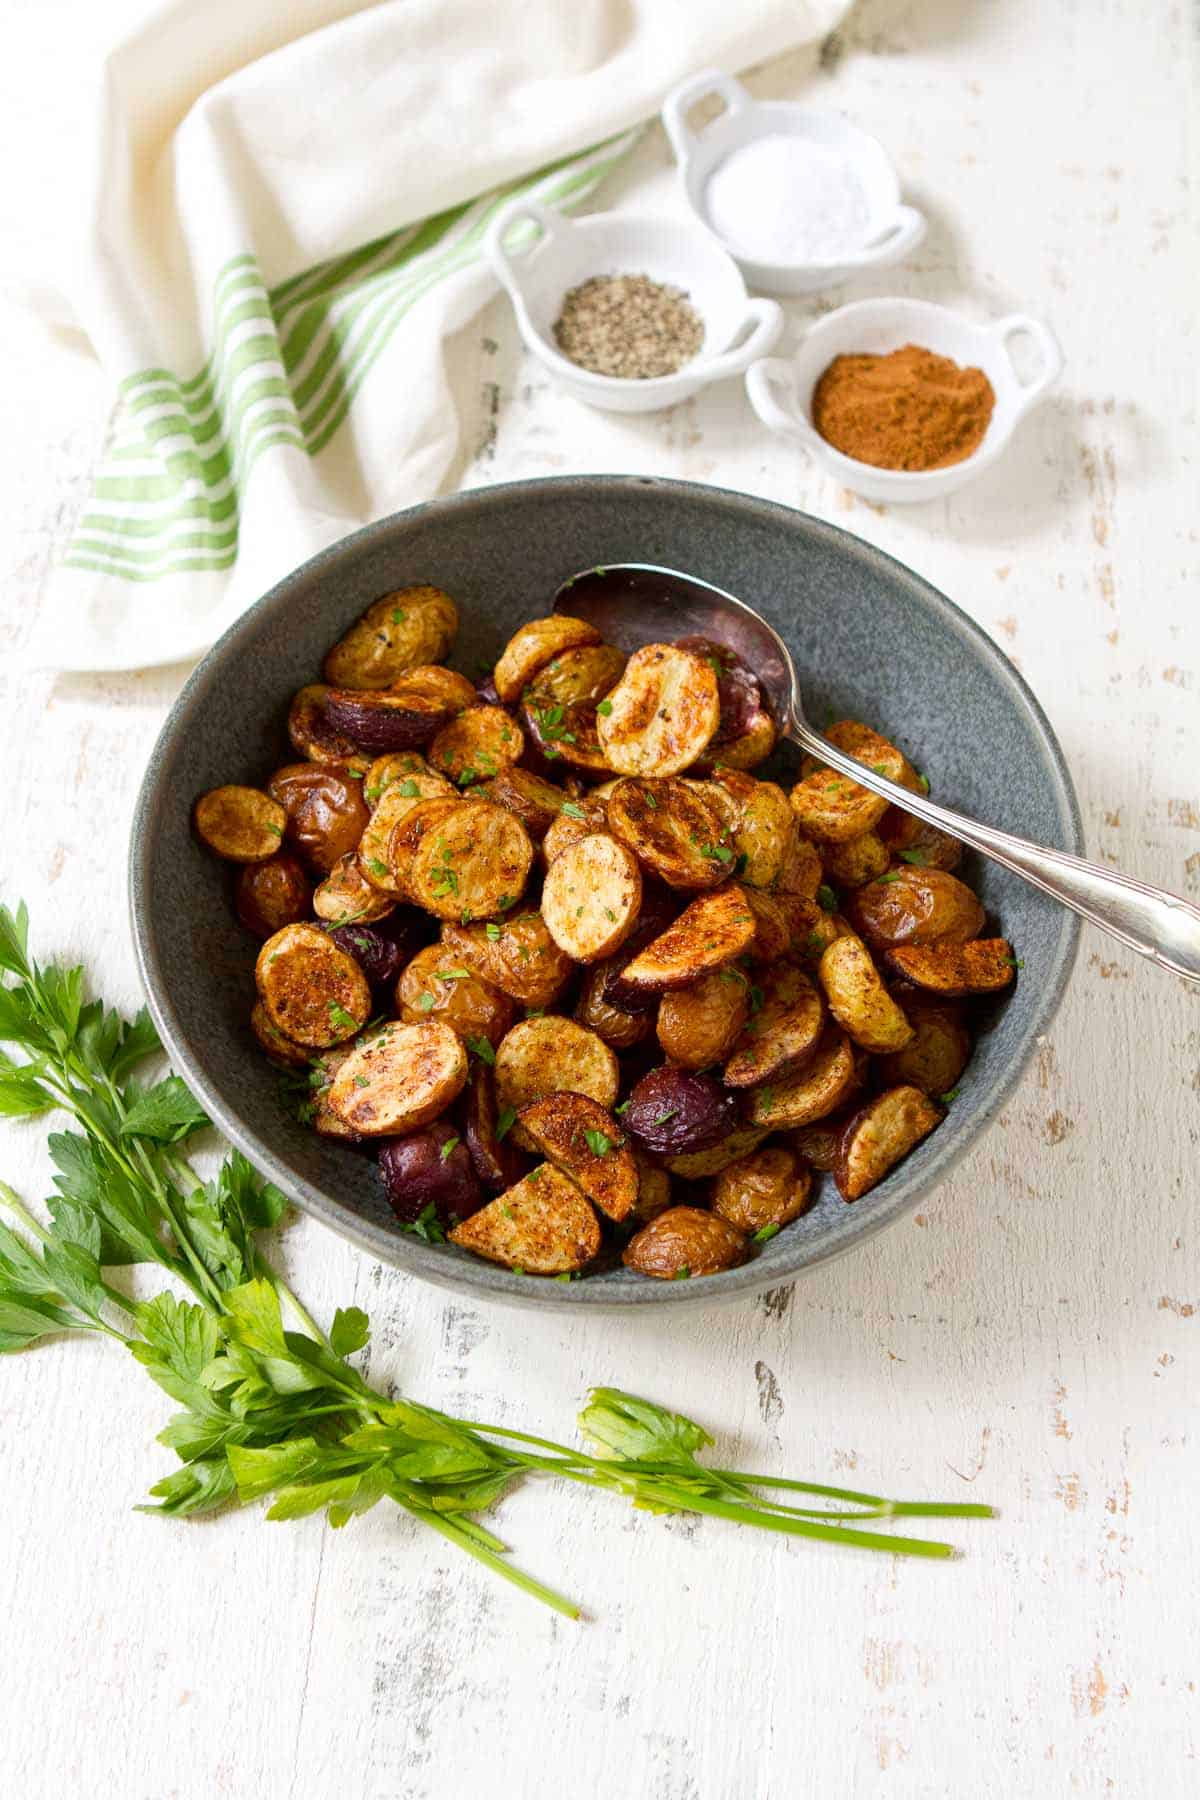 Overhead photo of mini roasted potatoes in a gray bowl, seasonings in small white bowls.